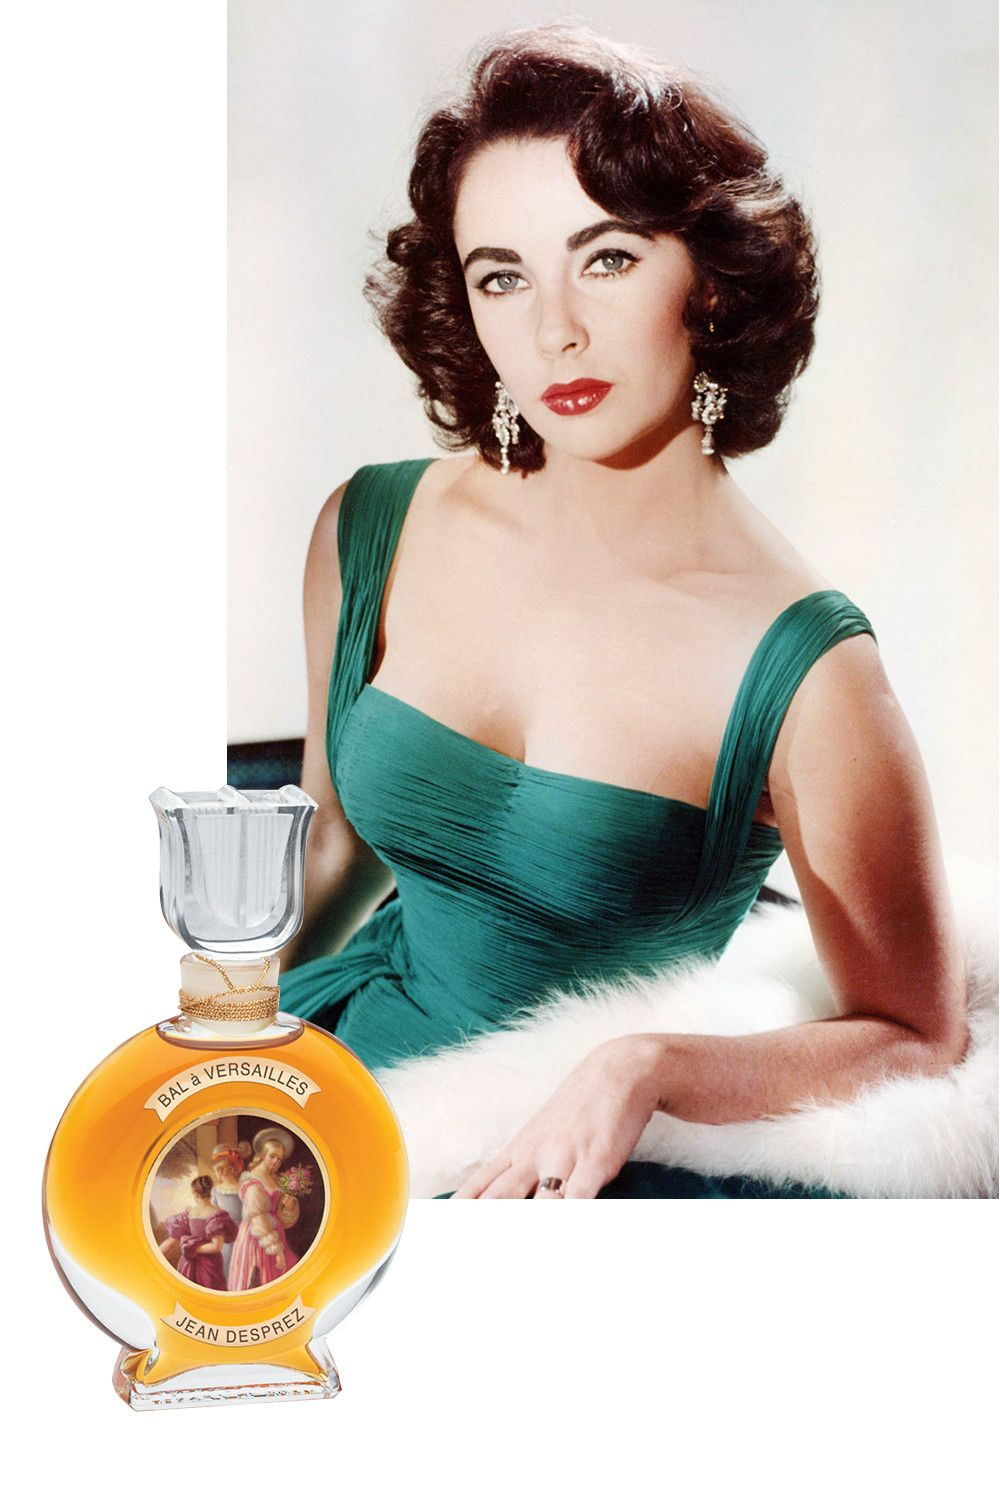 Famous People Named Ava in 14 famous women and their favorite perfumes